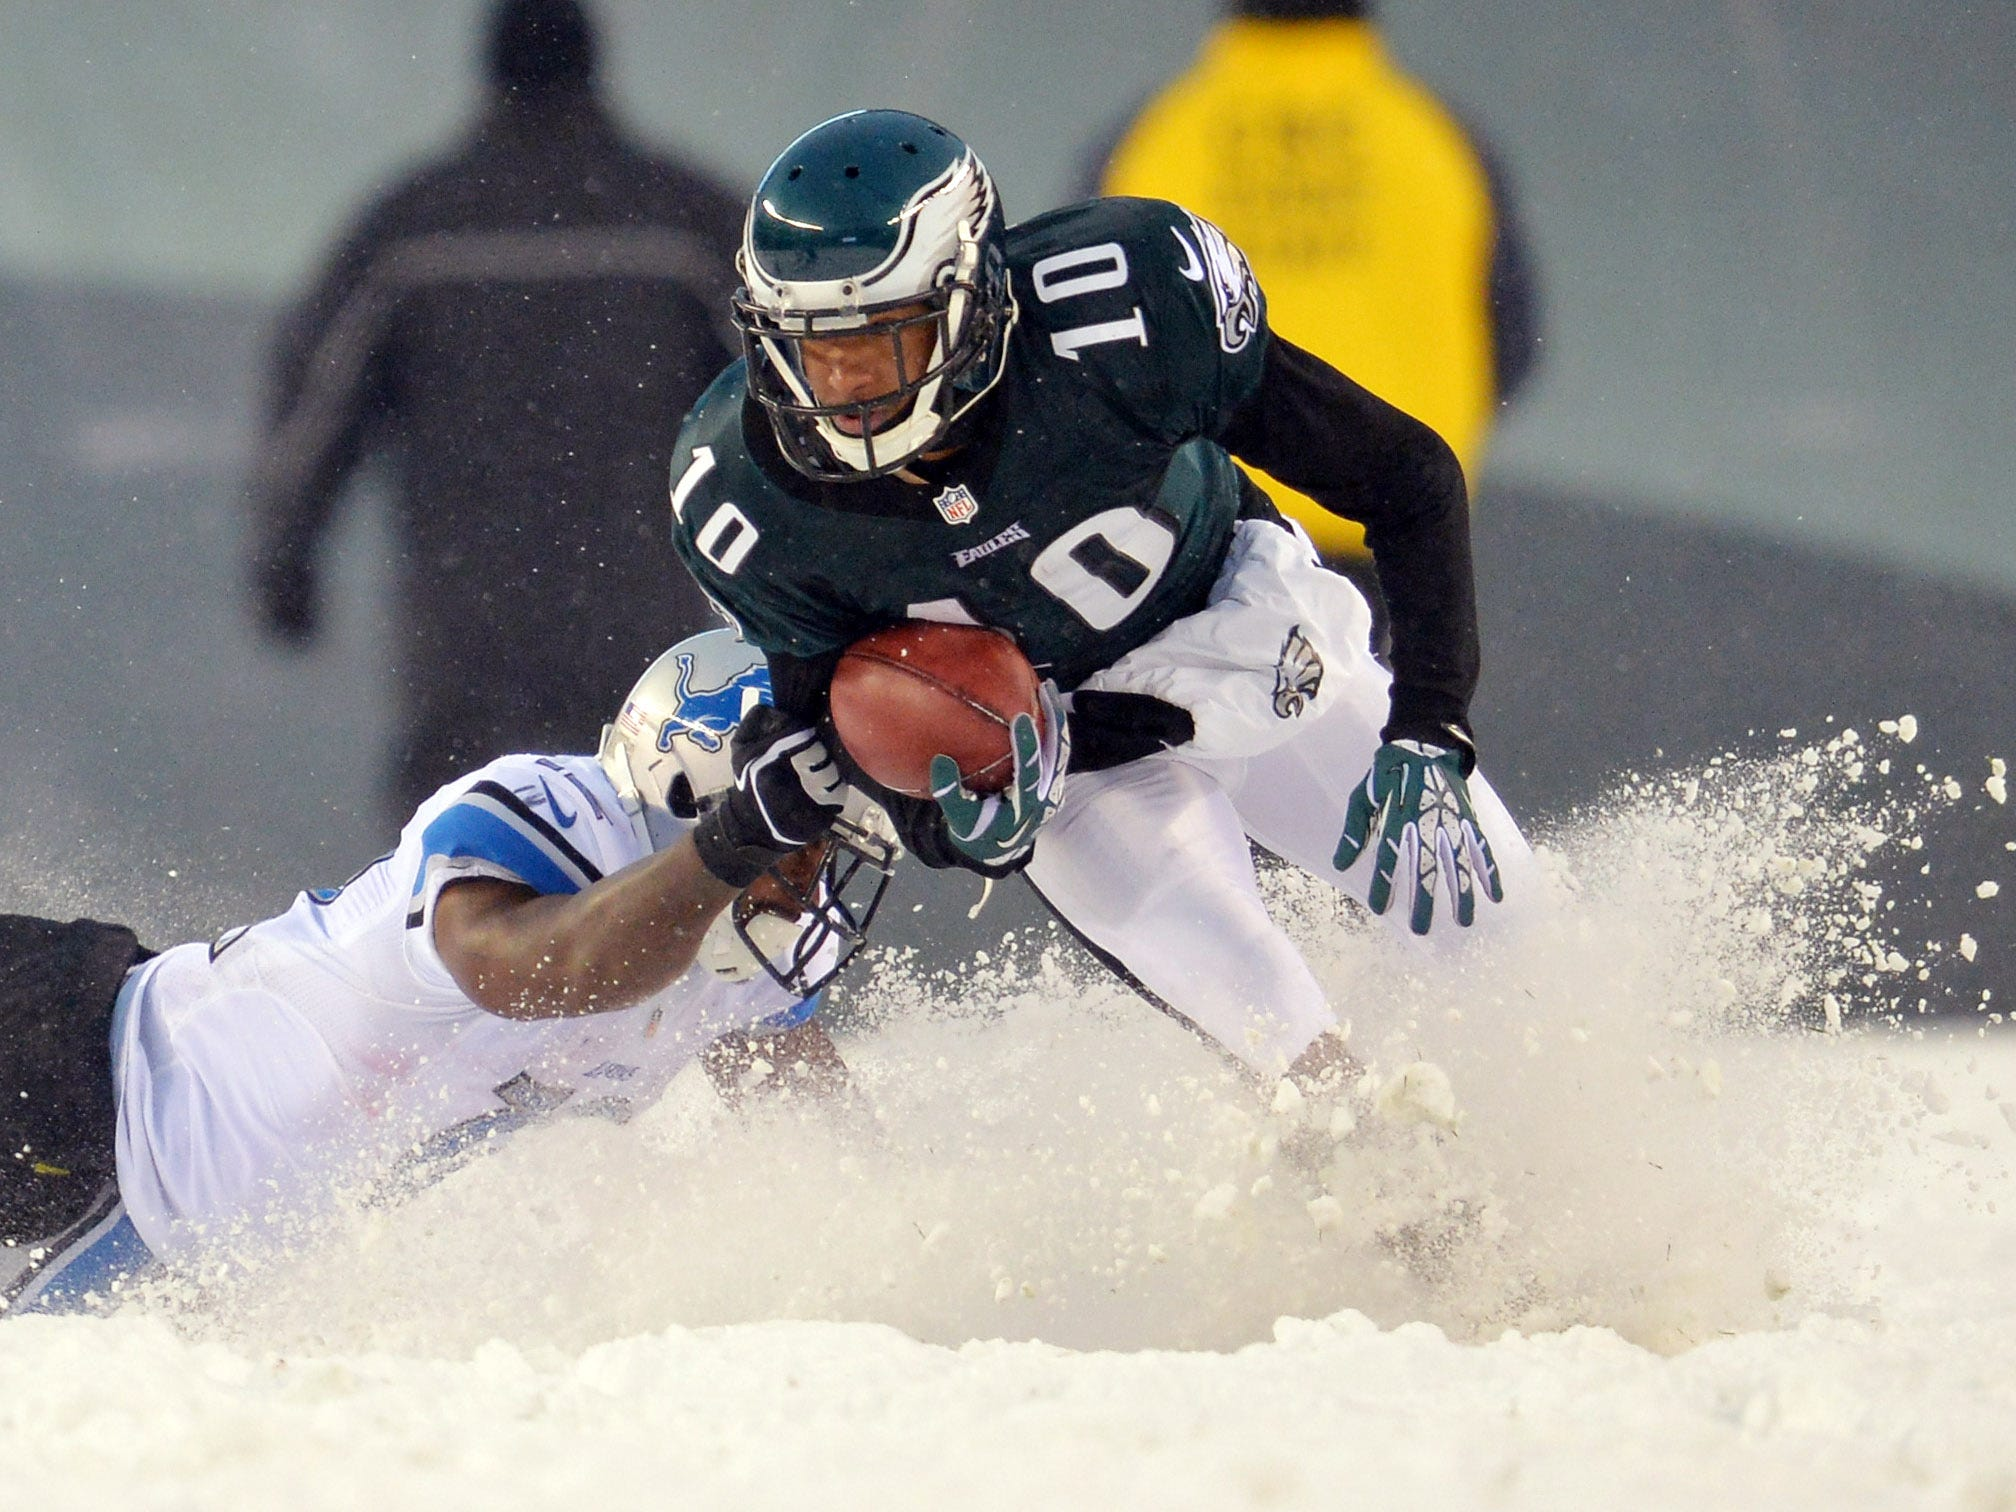 Dec. 8, 2013: Philadelphia Eagles wide receiver DeSean Jackson returns a punt against the Detroit Lions during the fourth quarter at Lincoln Financial Field. The Eagles won the game, 34-20.